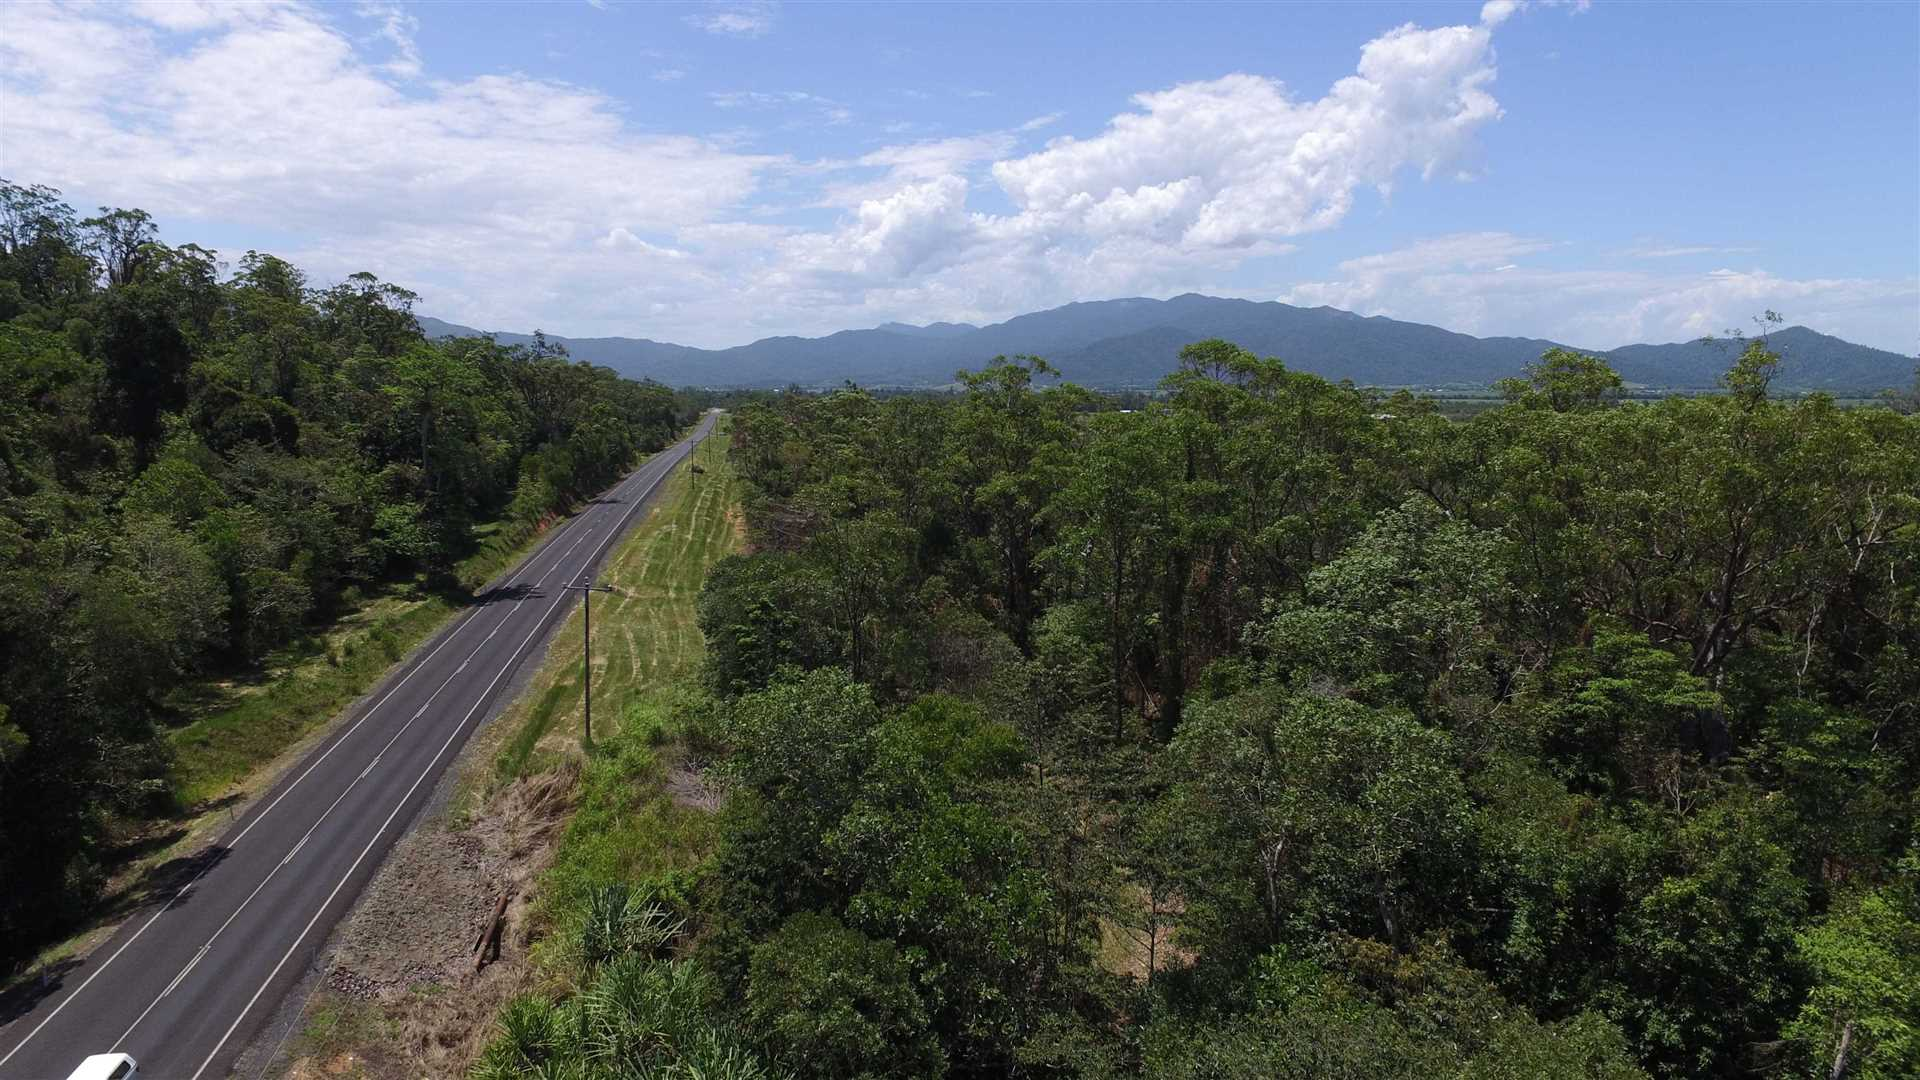 Aerial photo looking approx. West showing part of Lot 70 to right of road and part of Mount Mackay National Park to left of road